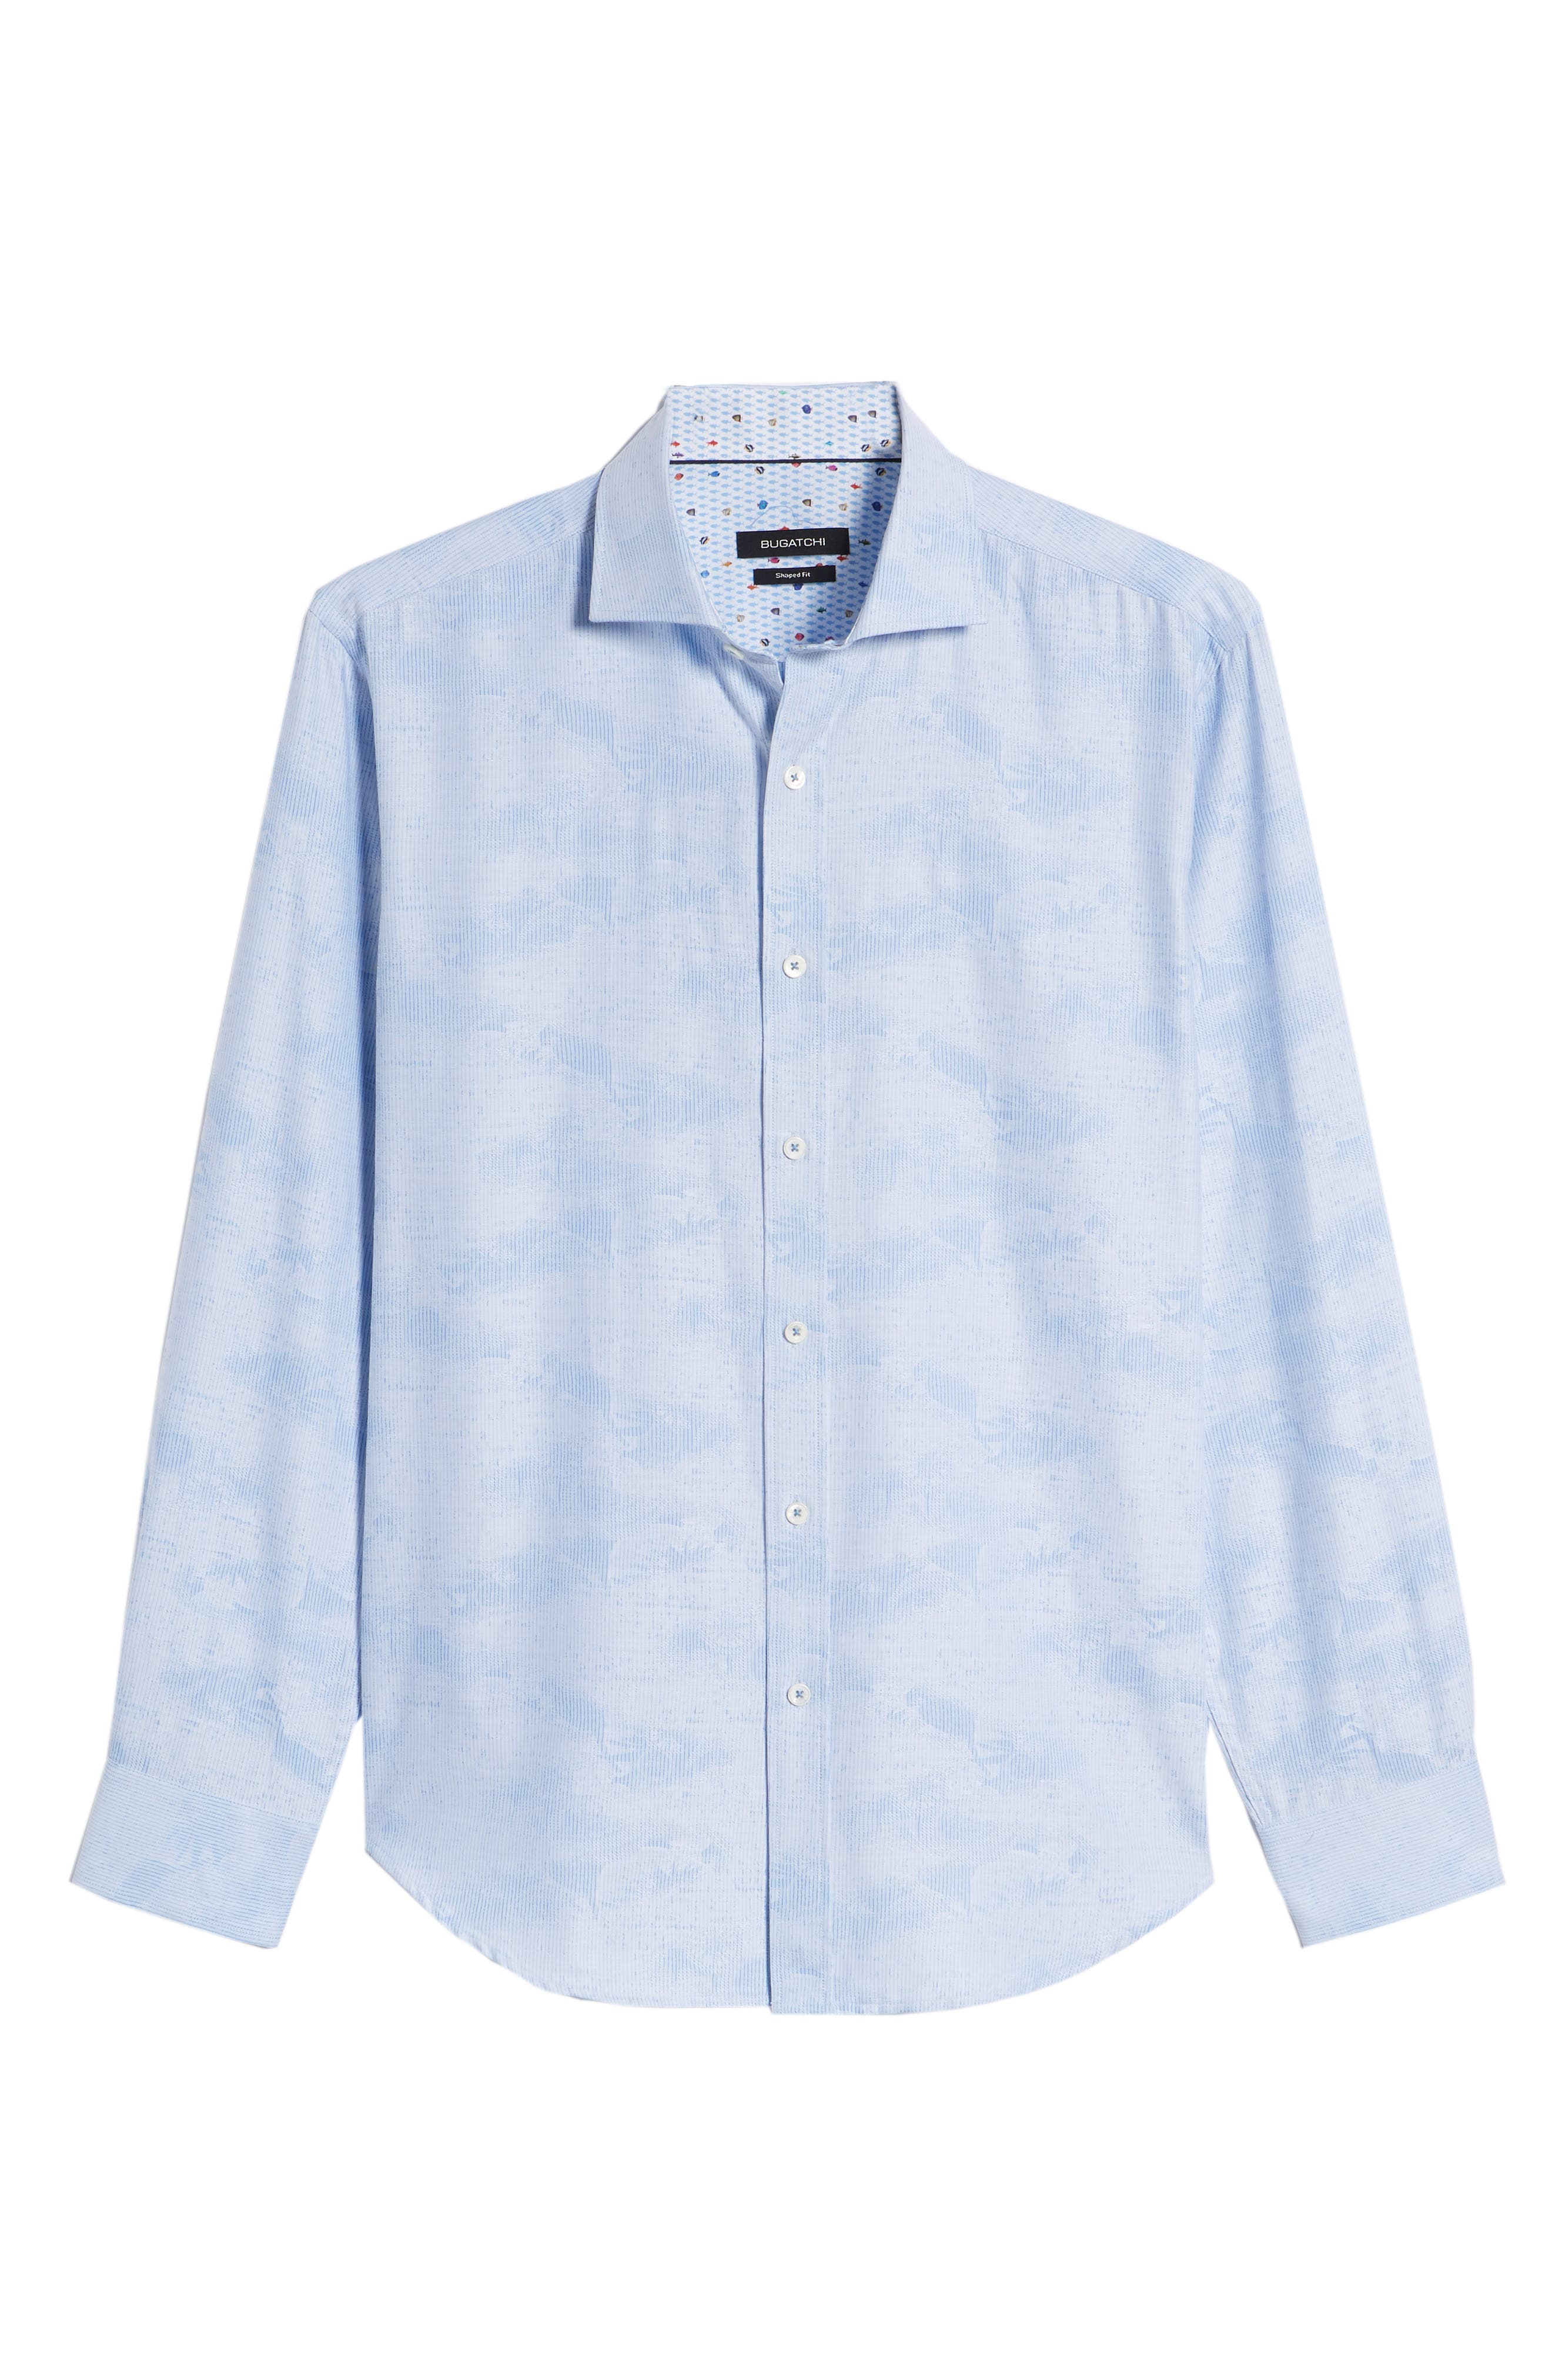 Woven Sport Shirt,                             Alternate thumbnail 6, color,                             459